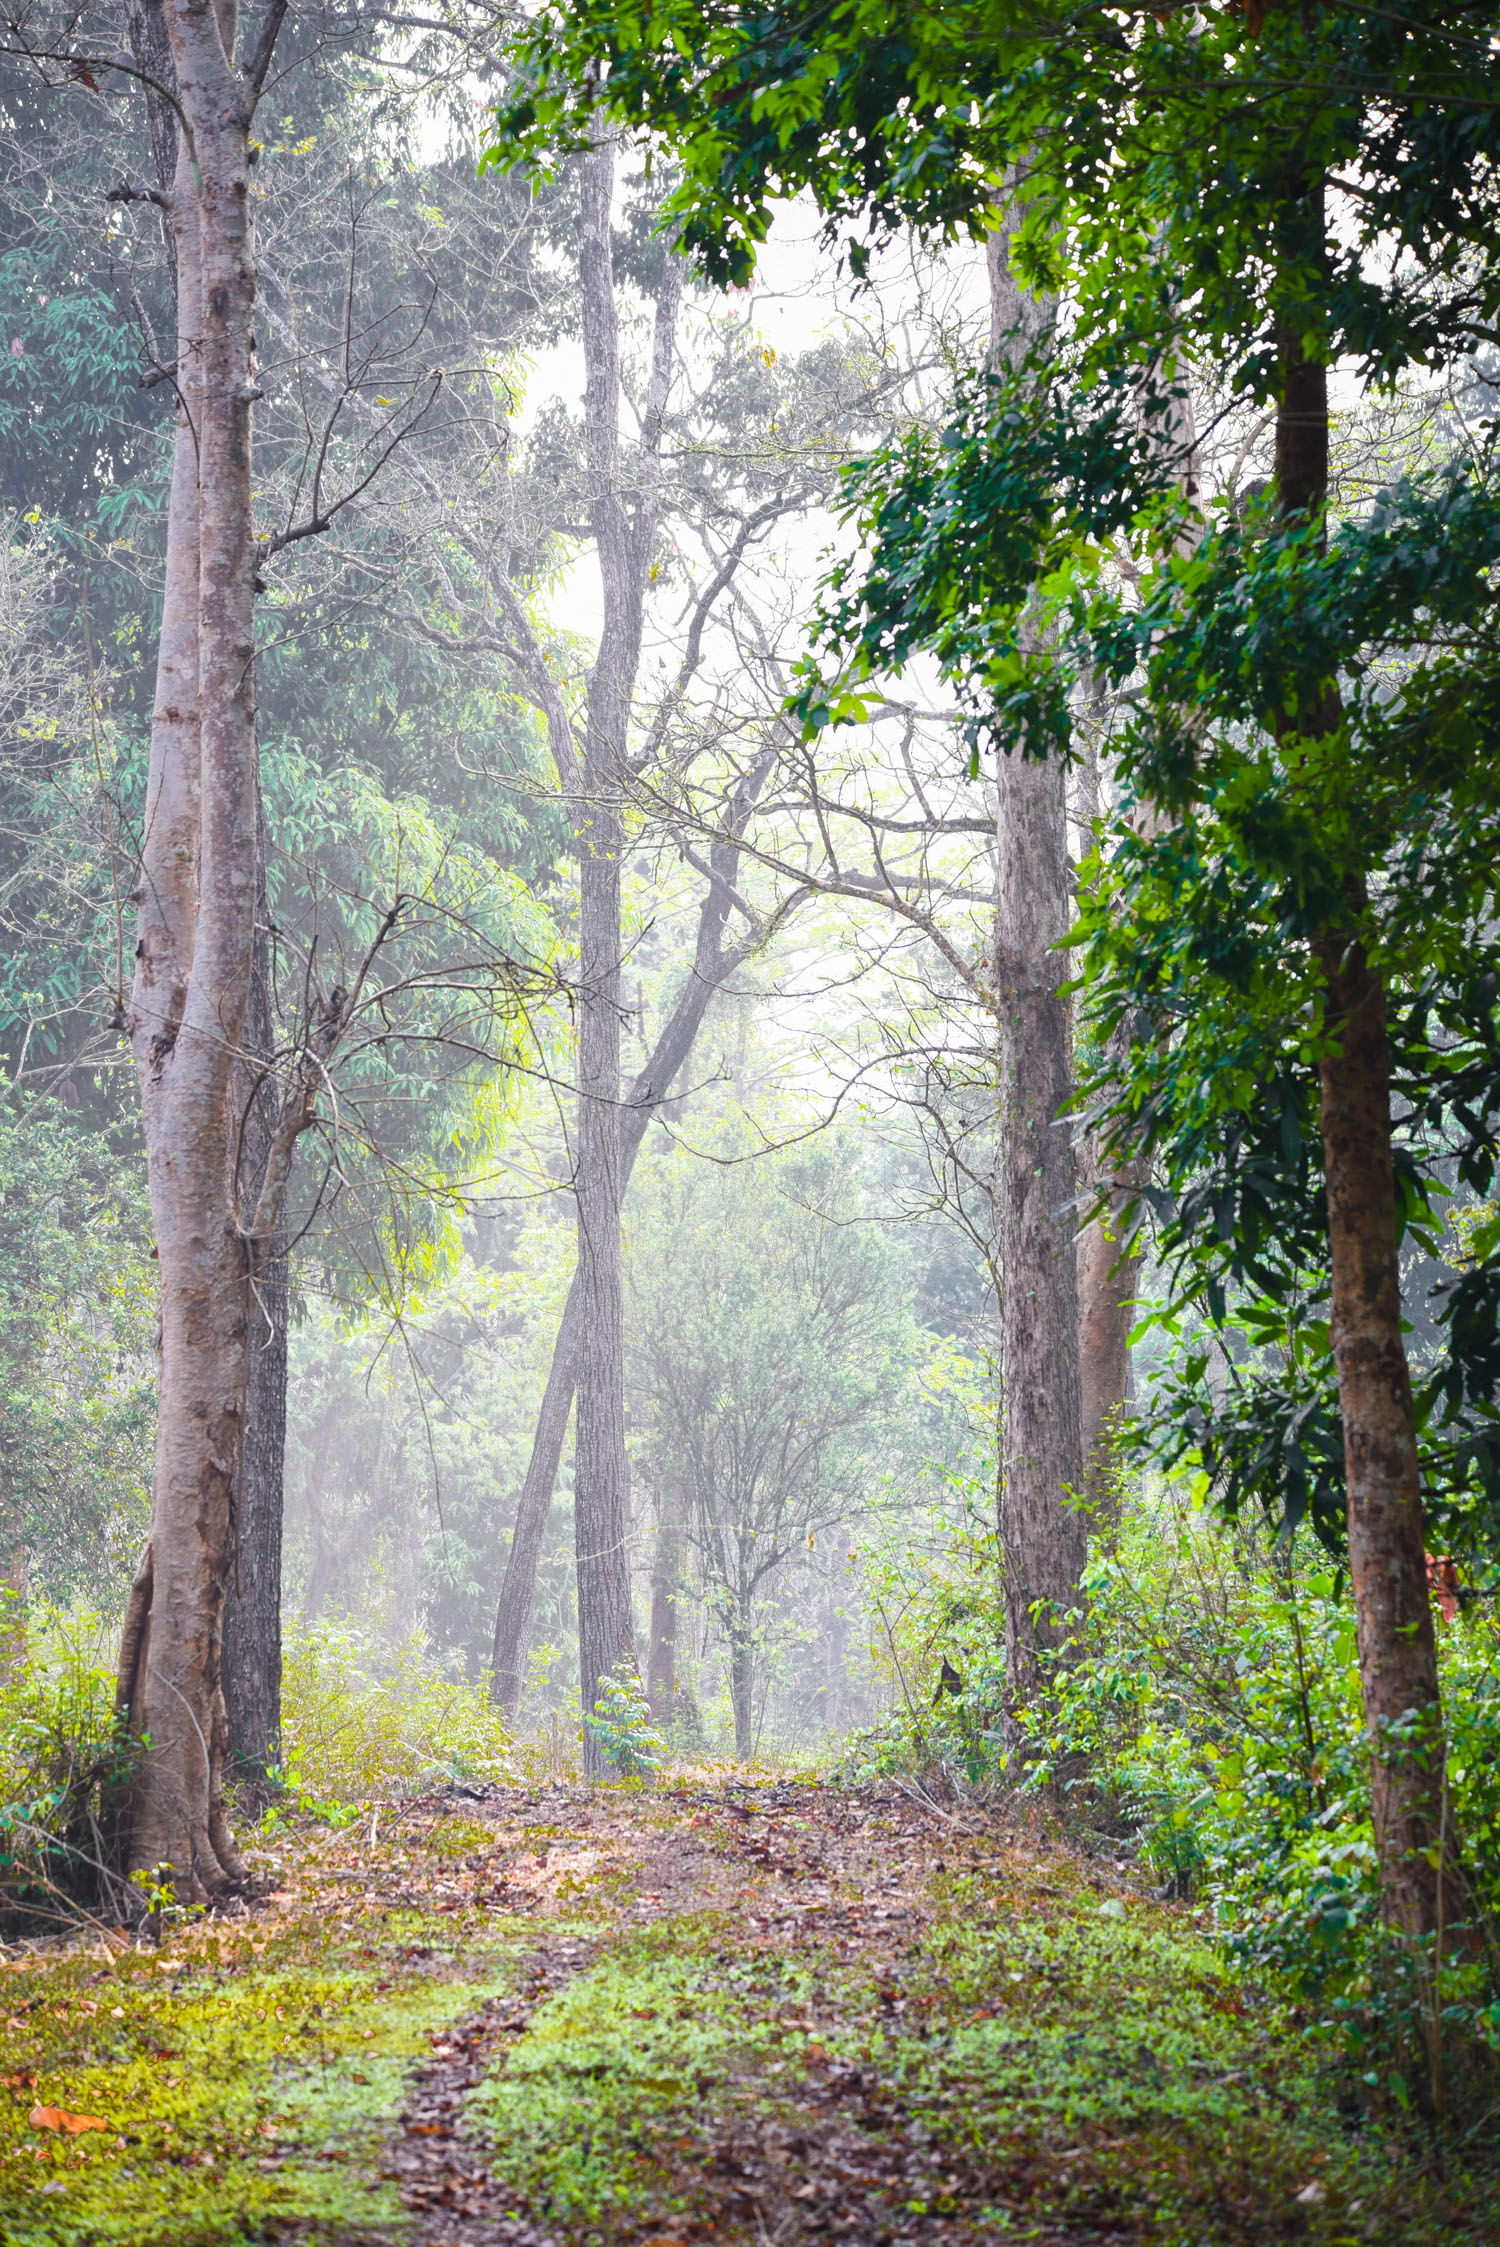 maredumilli forest, free indian travel and stock photos